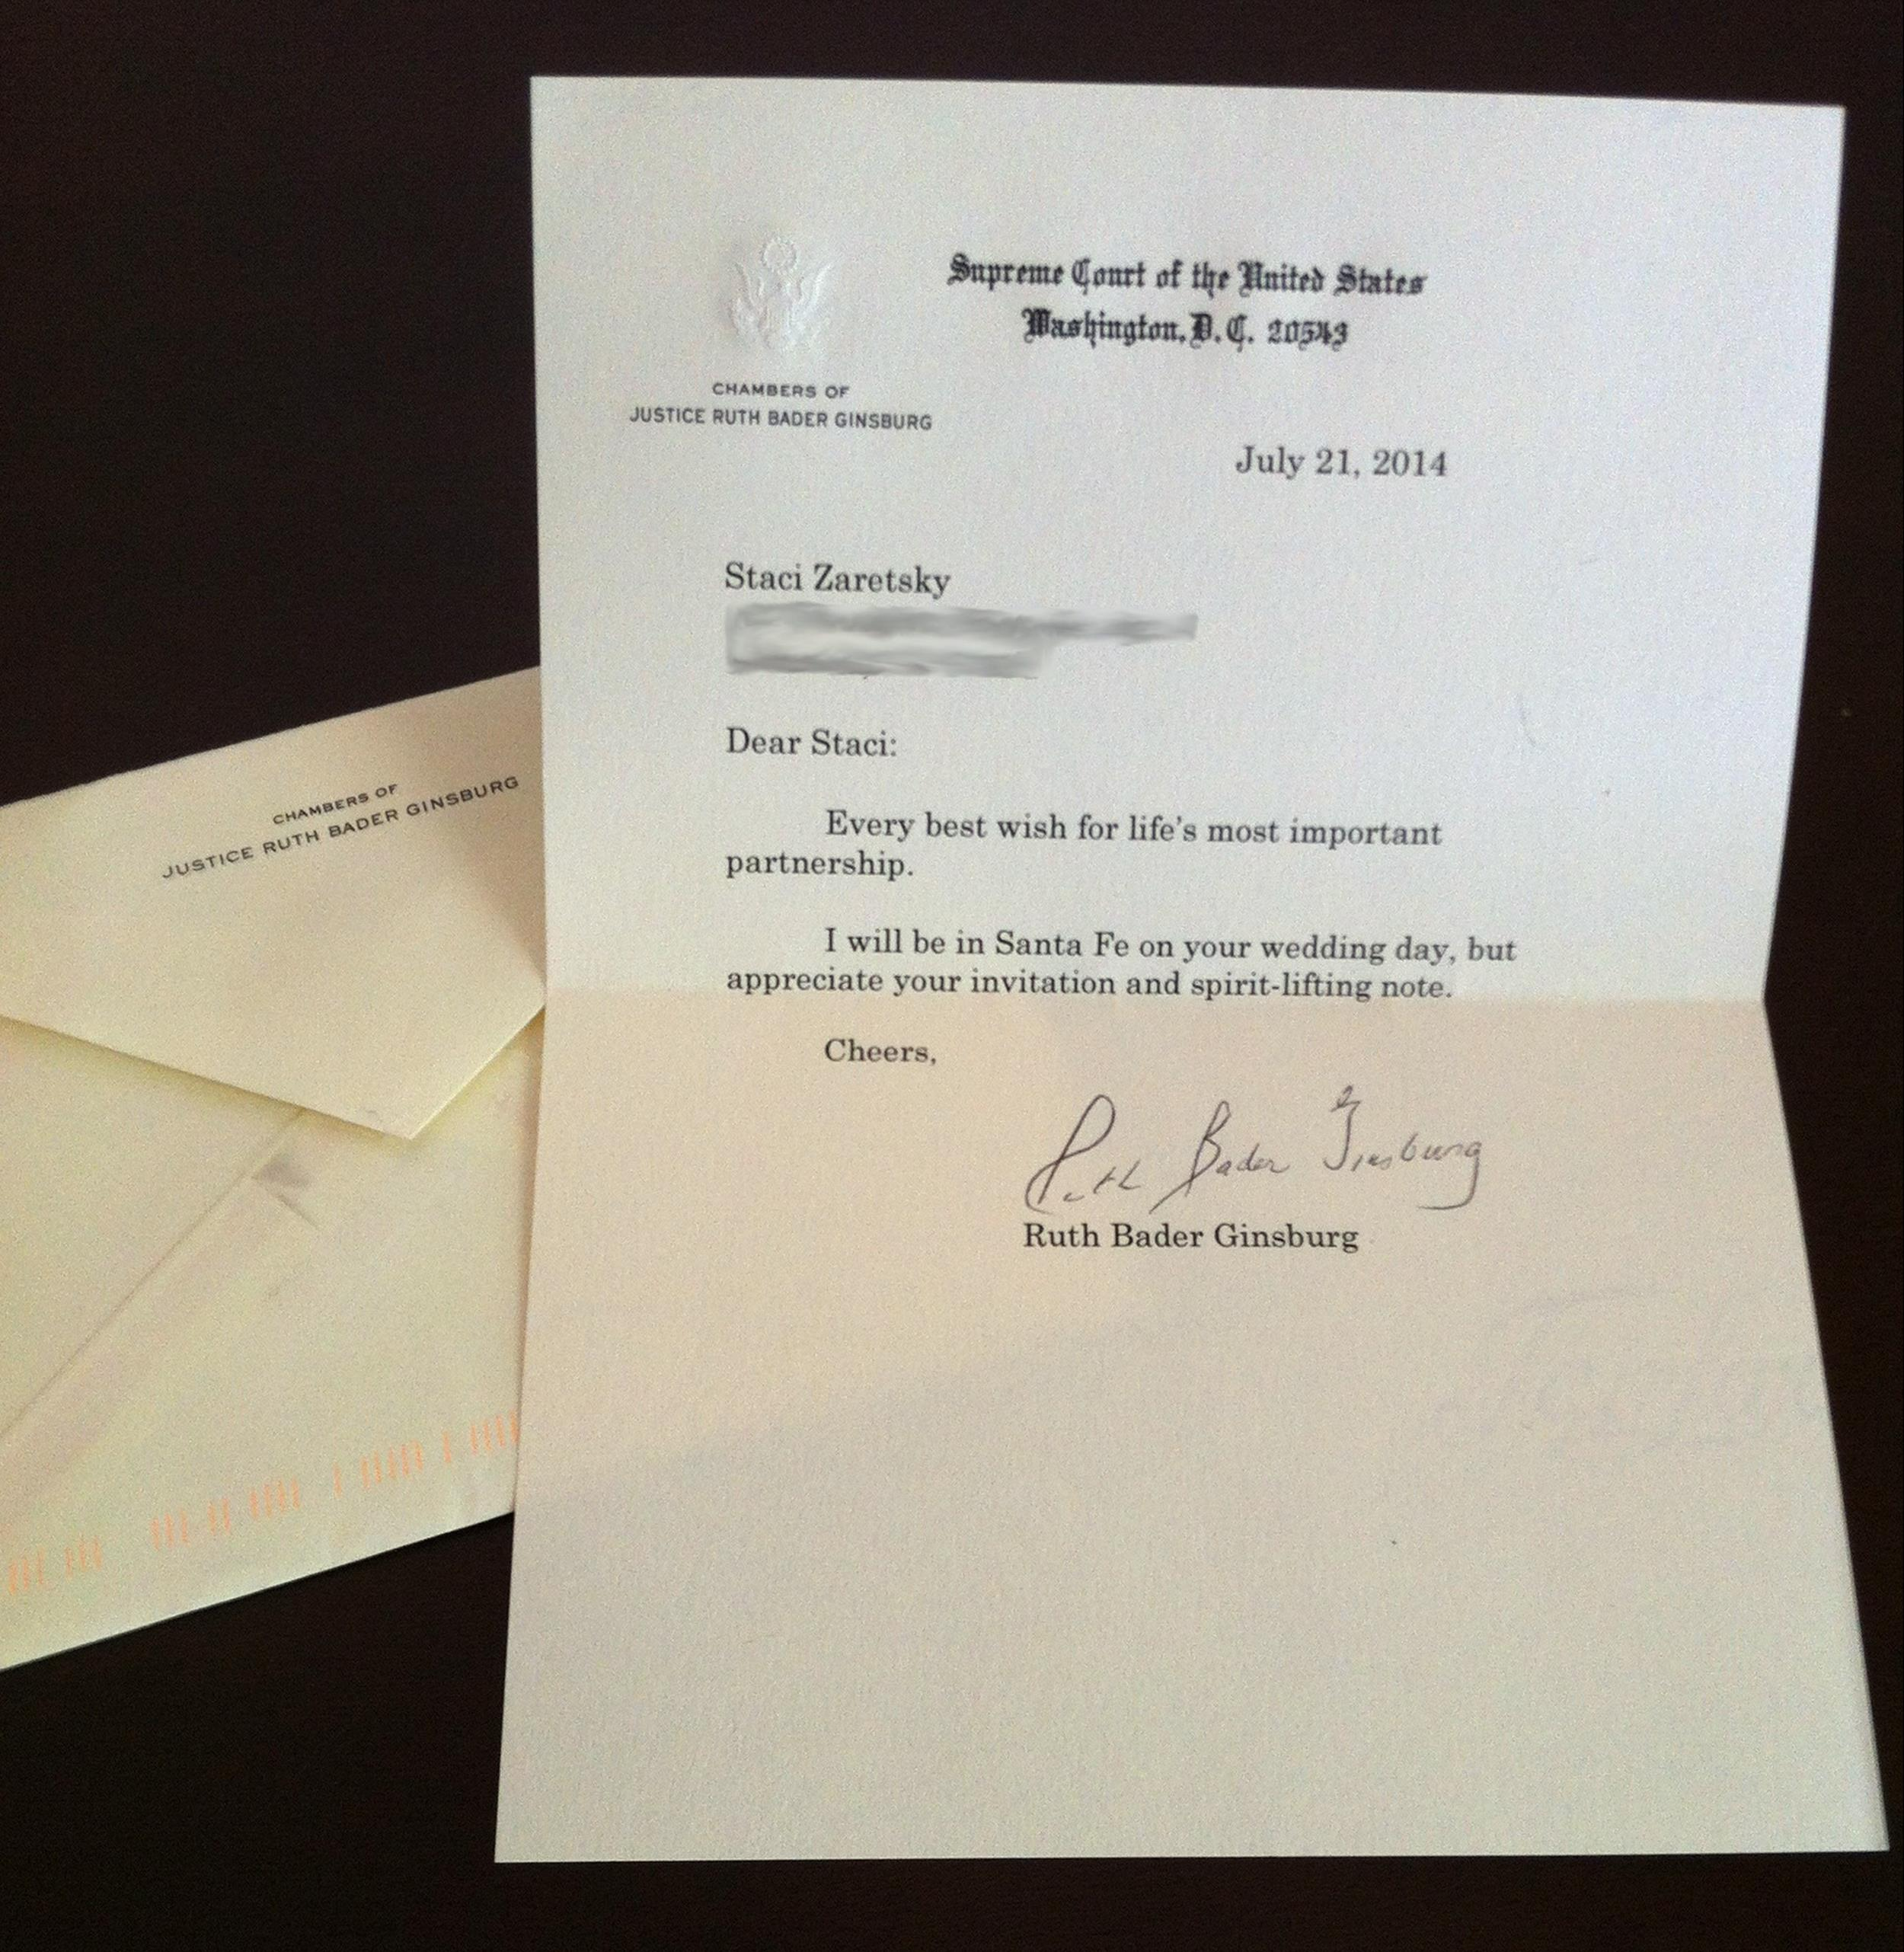 Image: Supreme Court Justice Ruth Bader Ginsburg's letter to bride-to-be Staci Zaretsky